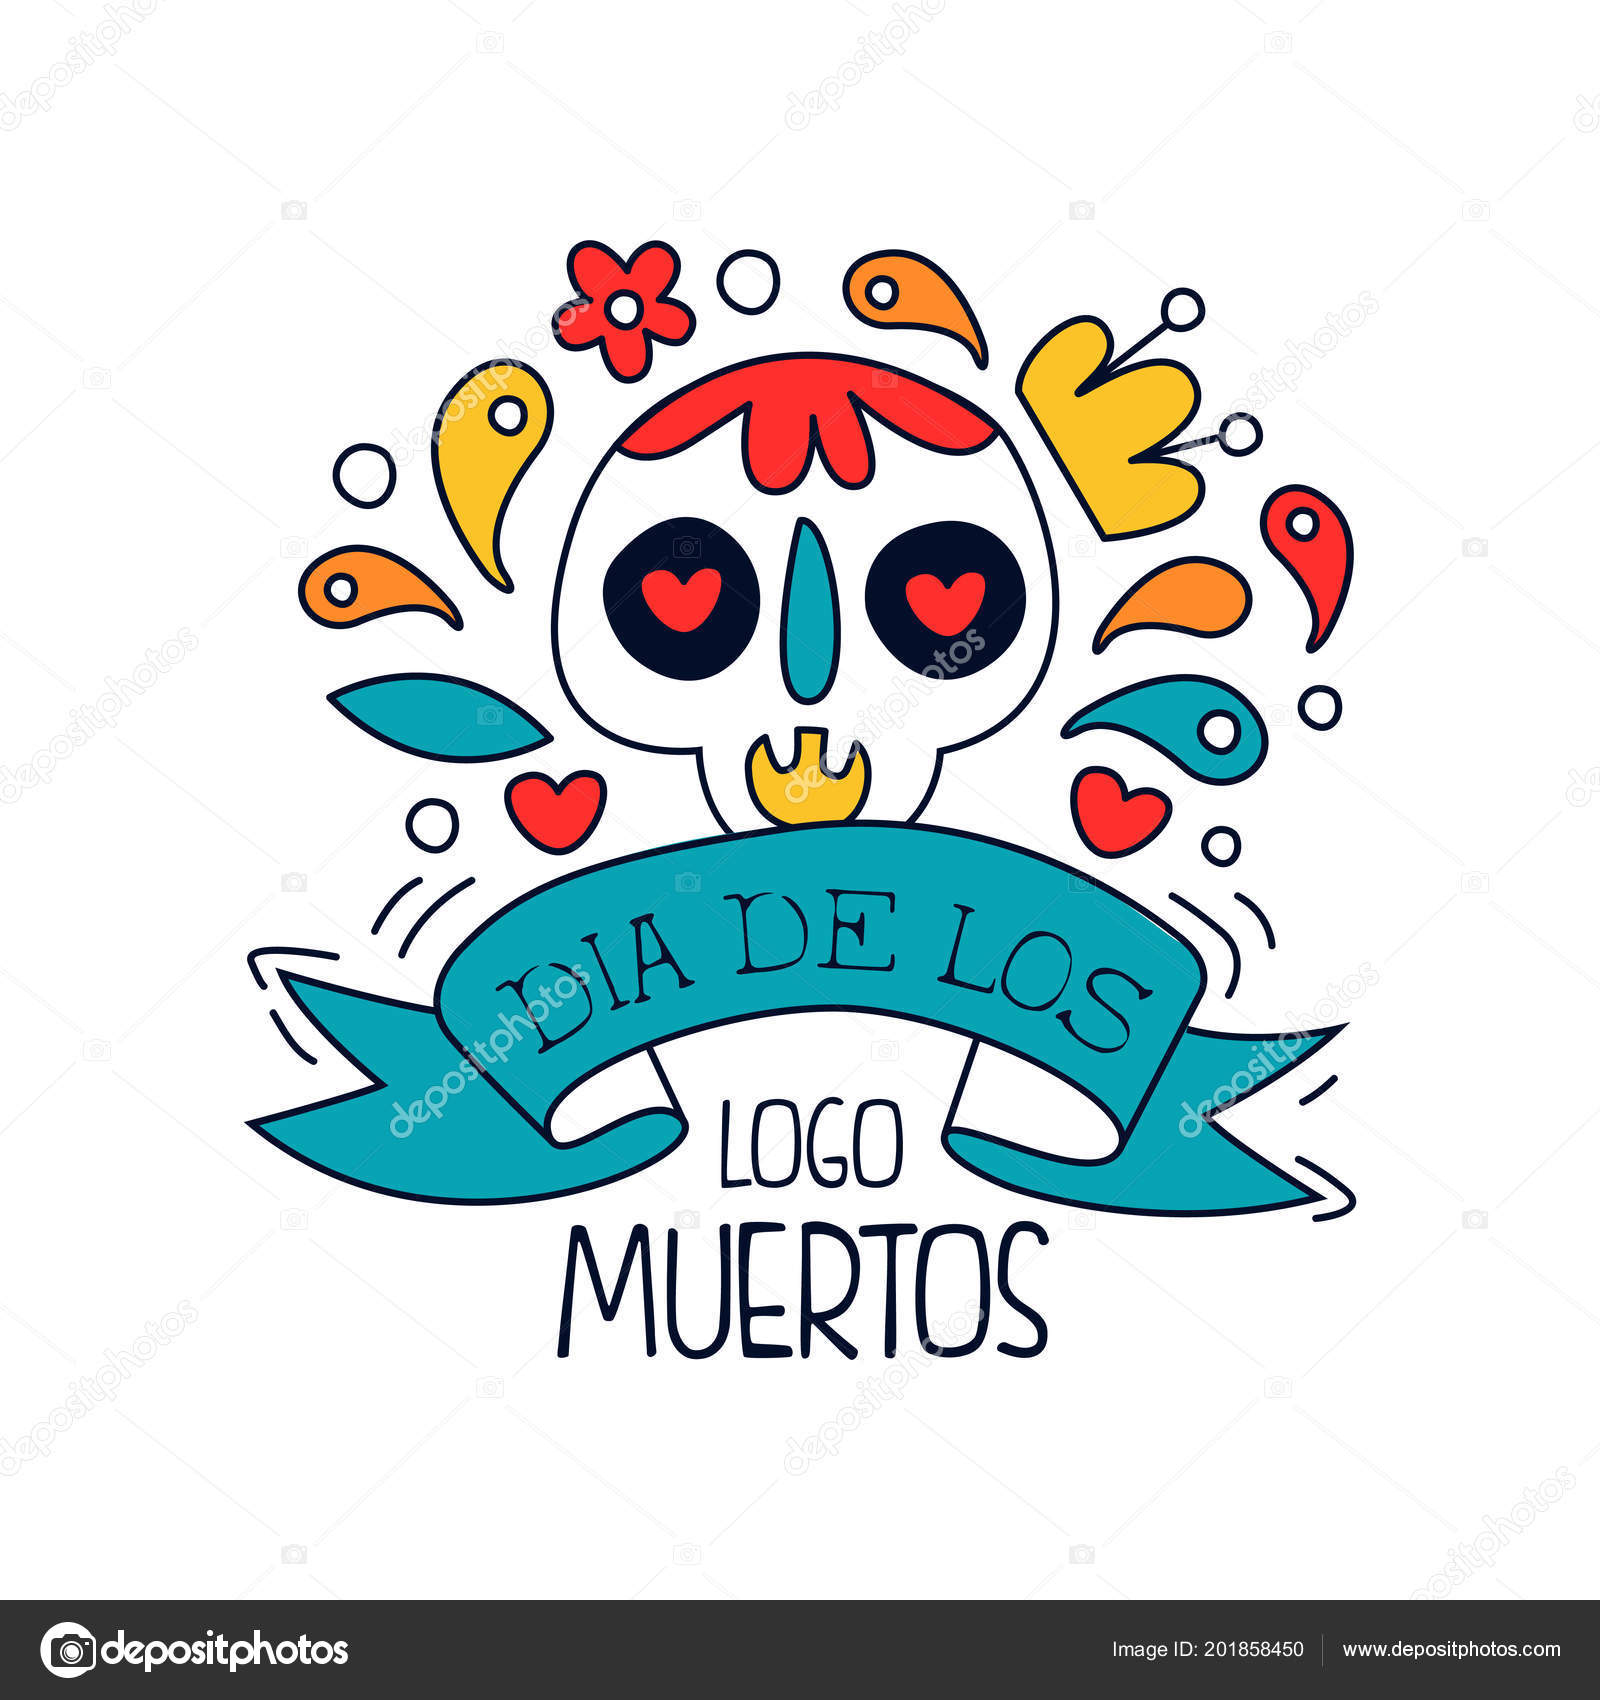 Dia de los muertos logo traditional mexican day of the dead design traditional mexican day of the dead design element with sugar festive skull holiday party banner poster greeting card or invitation hand drawn vector stopboris Image collections